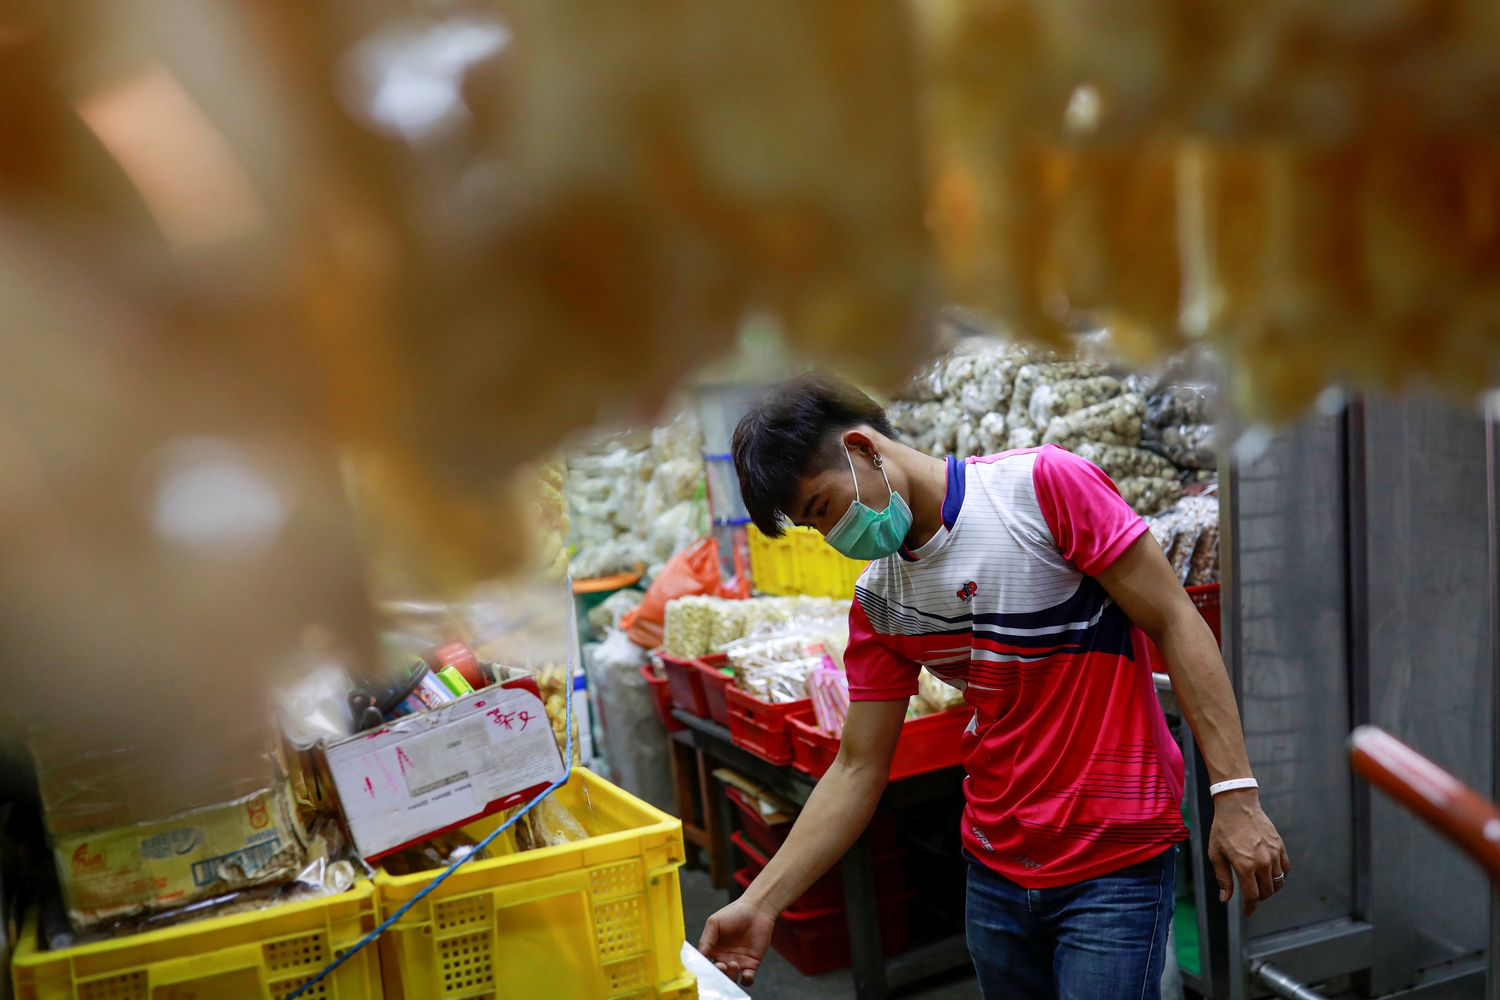 A migrant worker from Myanmar wears a protective face mask due to the coronavirus disease outbreak, as he works in a market in Bangkok on Friday. (Reuters photo)